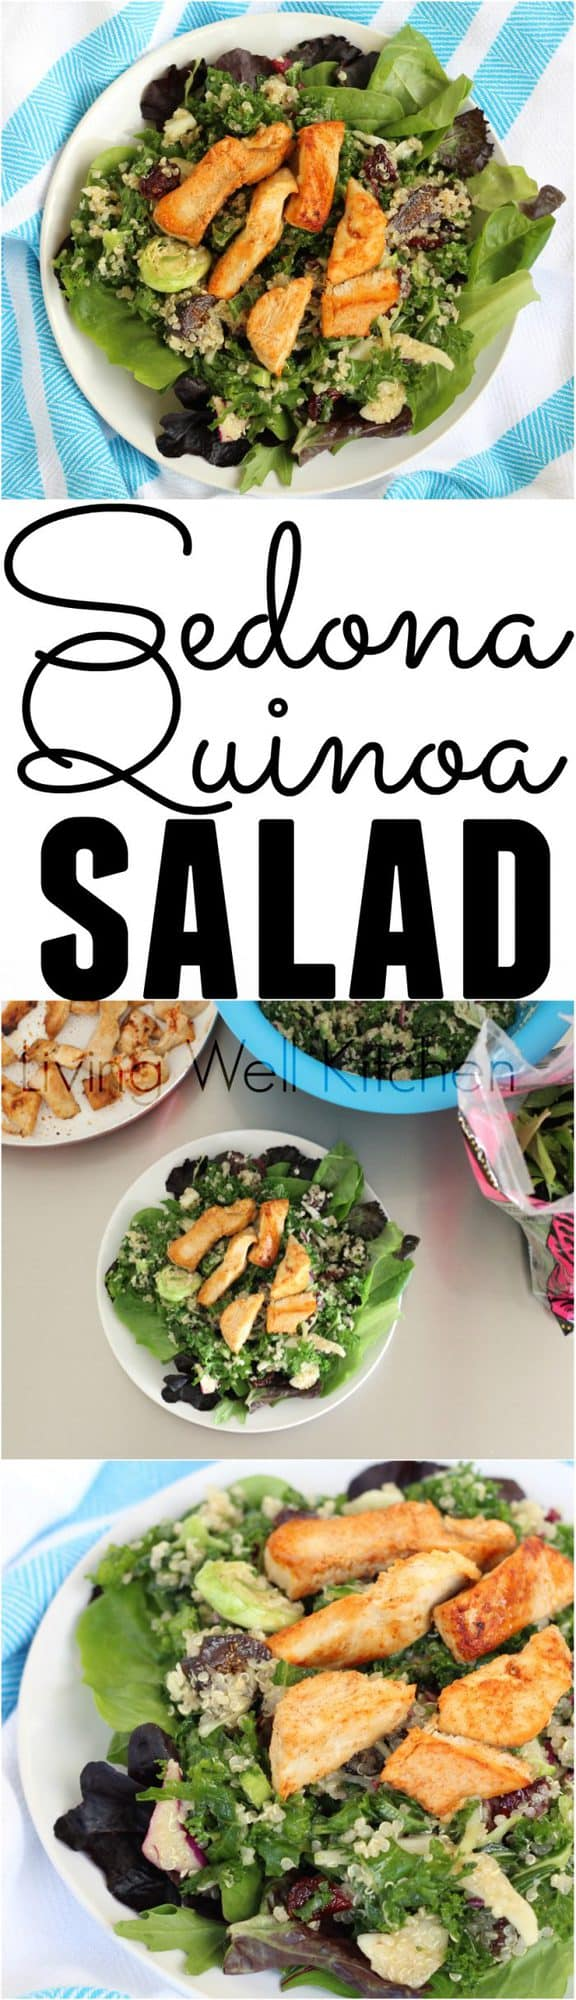 A goodie-filled salad inspired by a meal in Sedona, Arizona. This nourishing Sedona Quinoa Salad from @memeinge is full of veggies, quinoa, dried fruit, and more. This gluten free, dairy free salad recipe can easily be made vegan by substituting chickpeas for the chicken